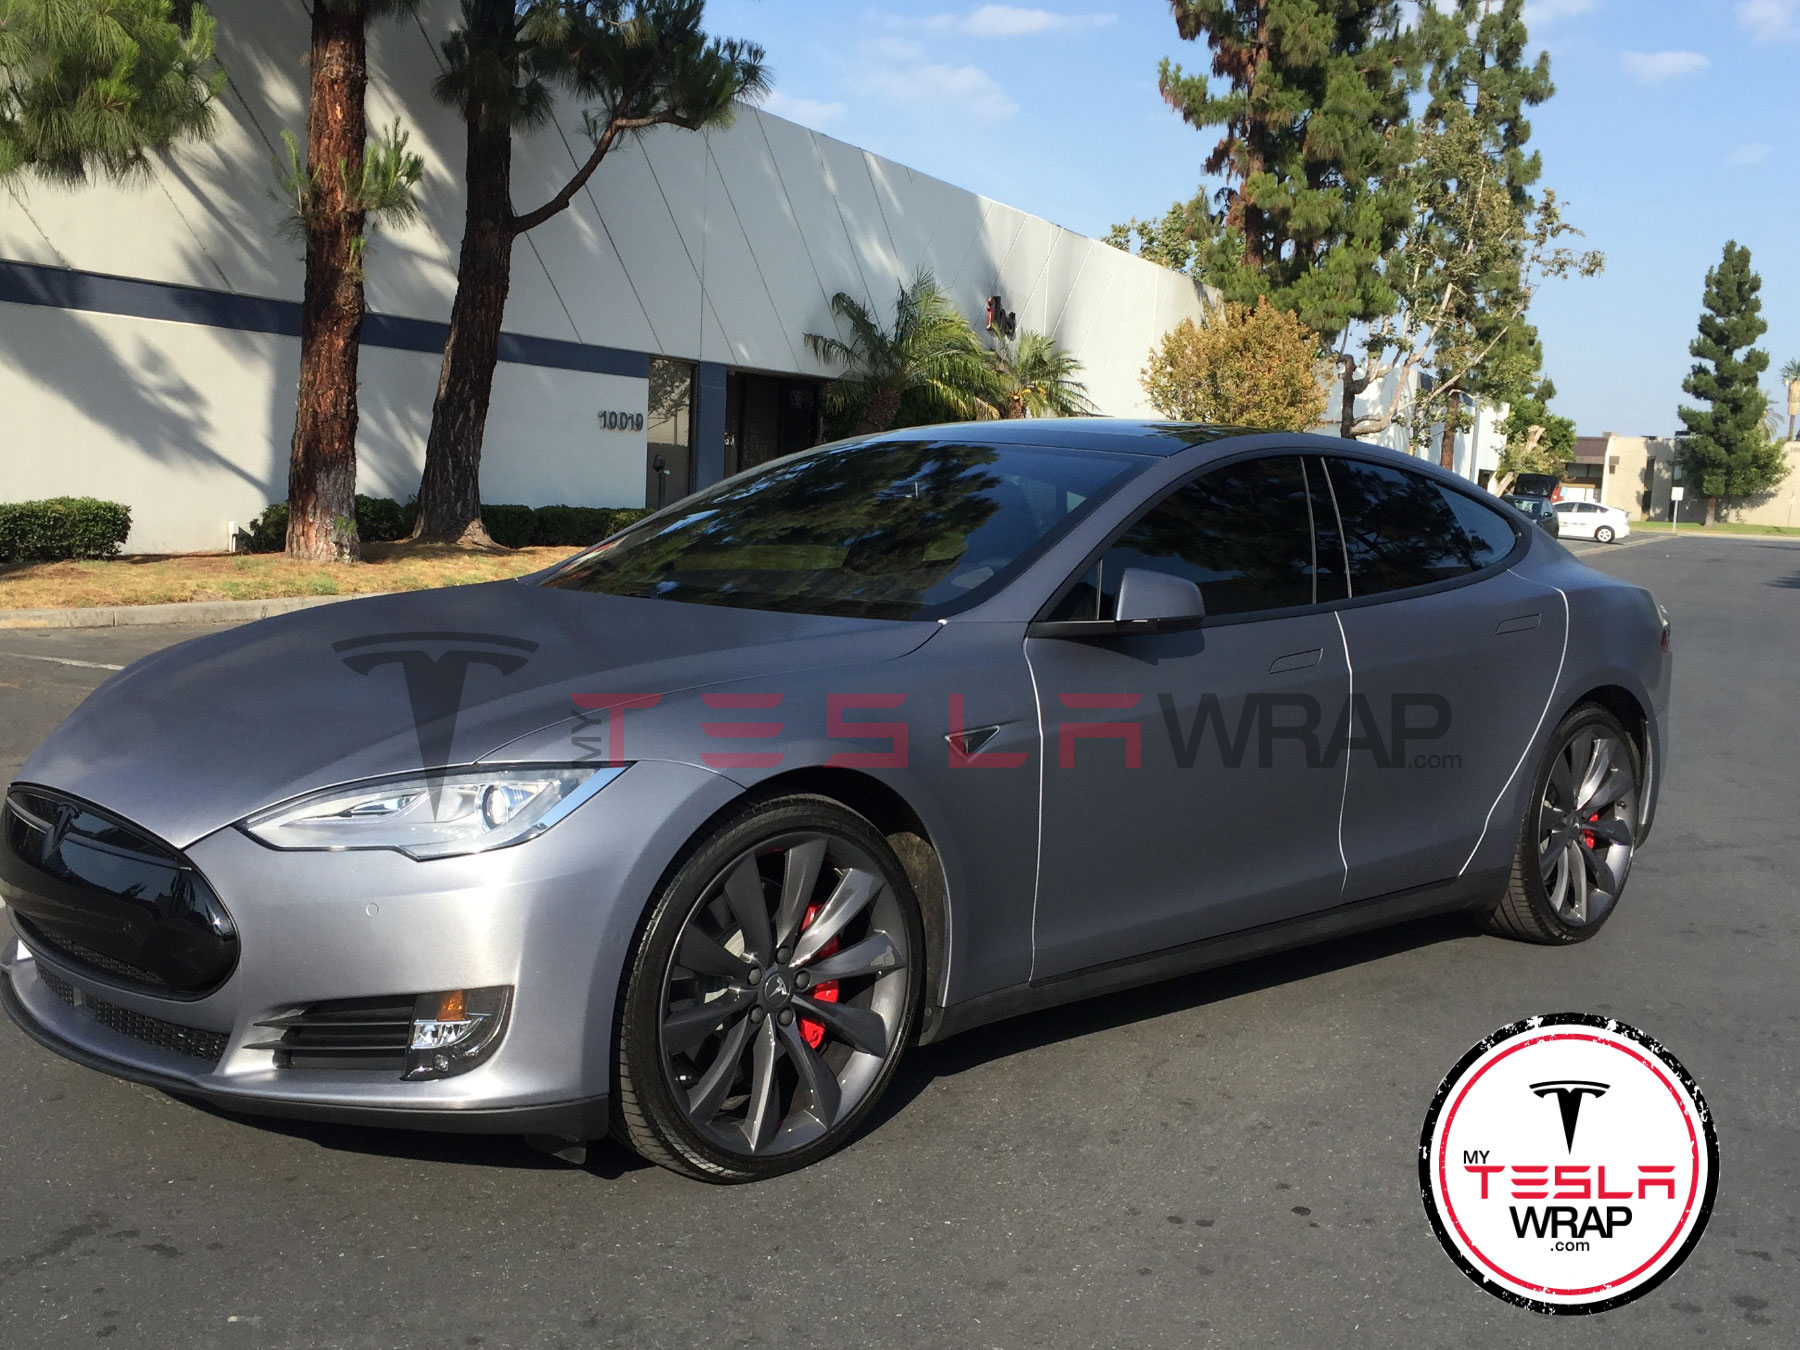 Matte grey Tesla model S vinyl car wrap